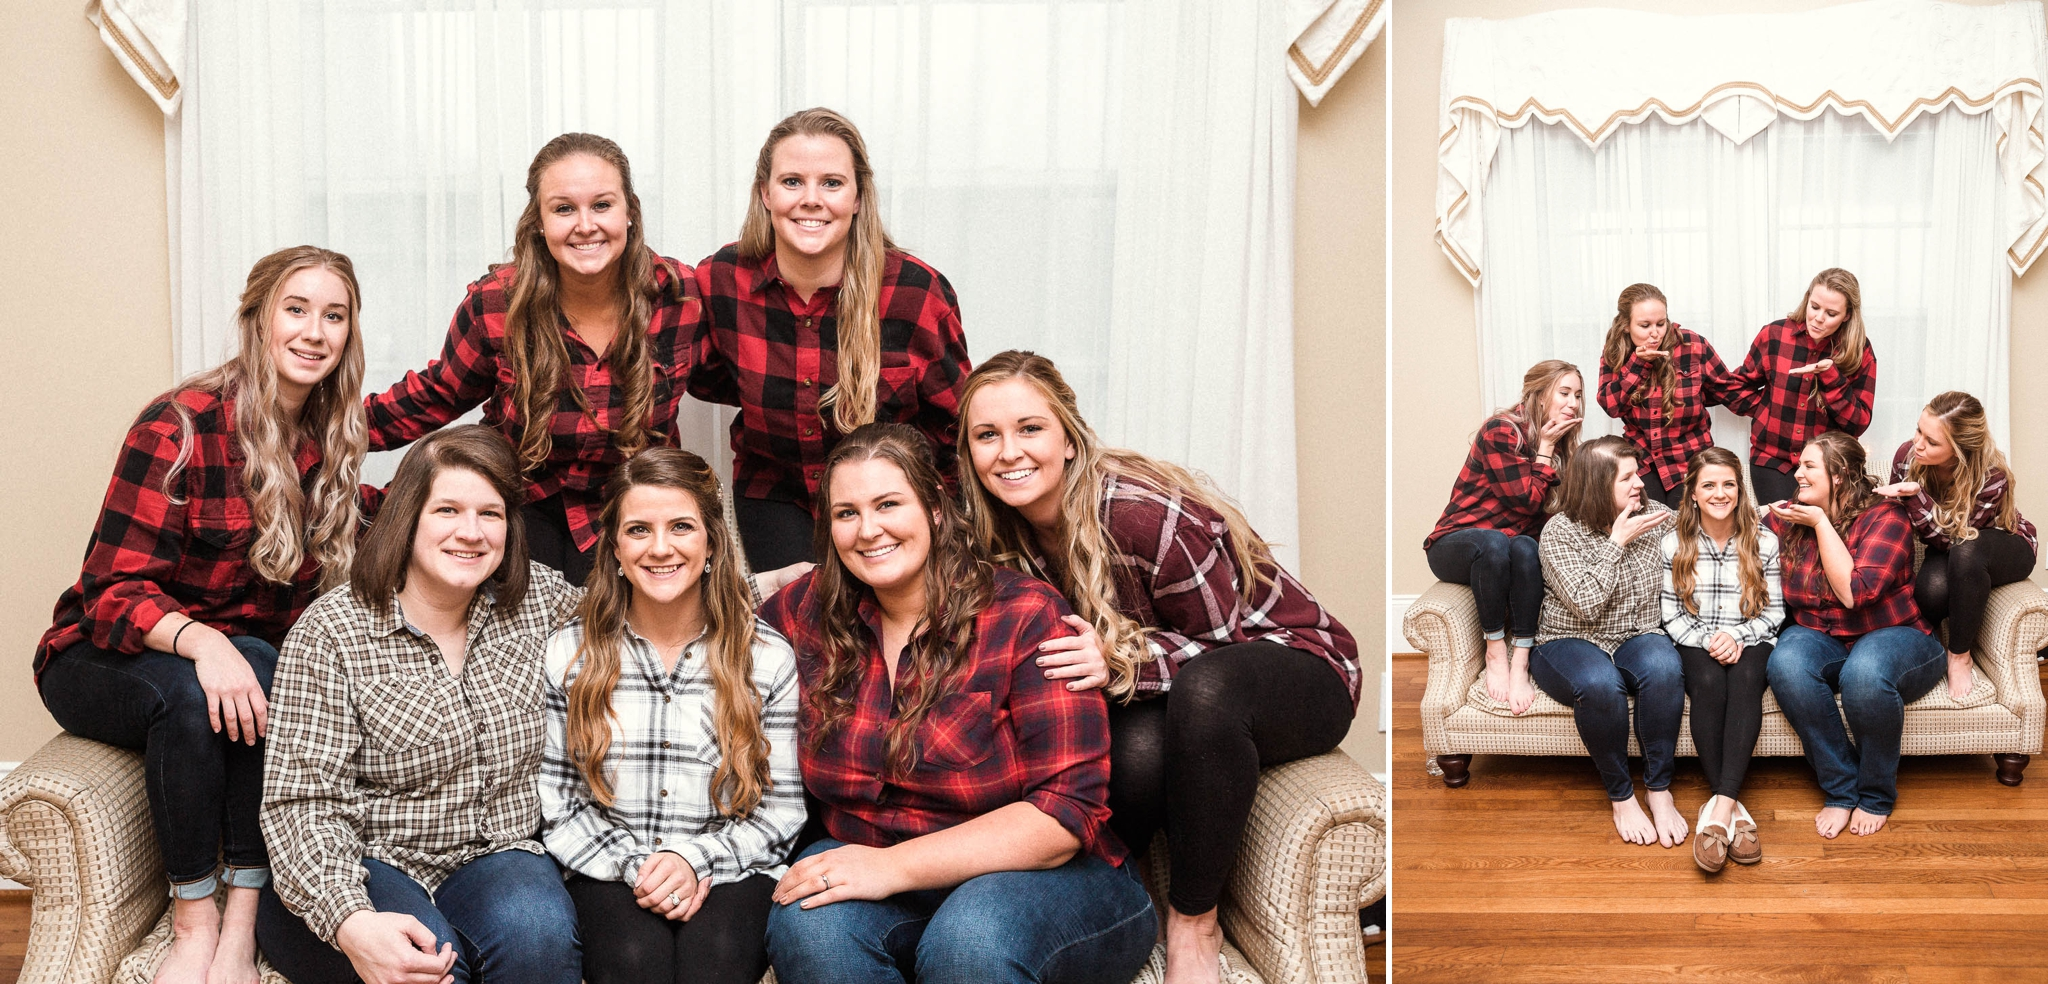 bridesmaids in flannels before the ceremony - Jessica + Brandon - Snowy Winter Wedding at the Rand Bryan House in Garner, NC - Raleigh North Carolina Wedding Photographer